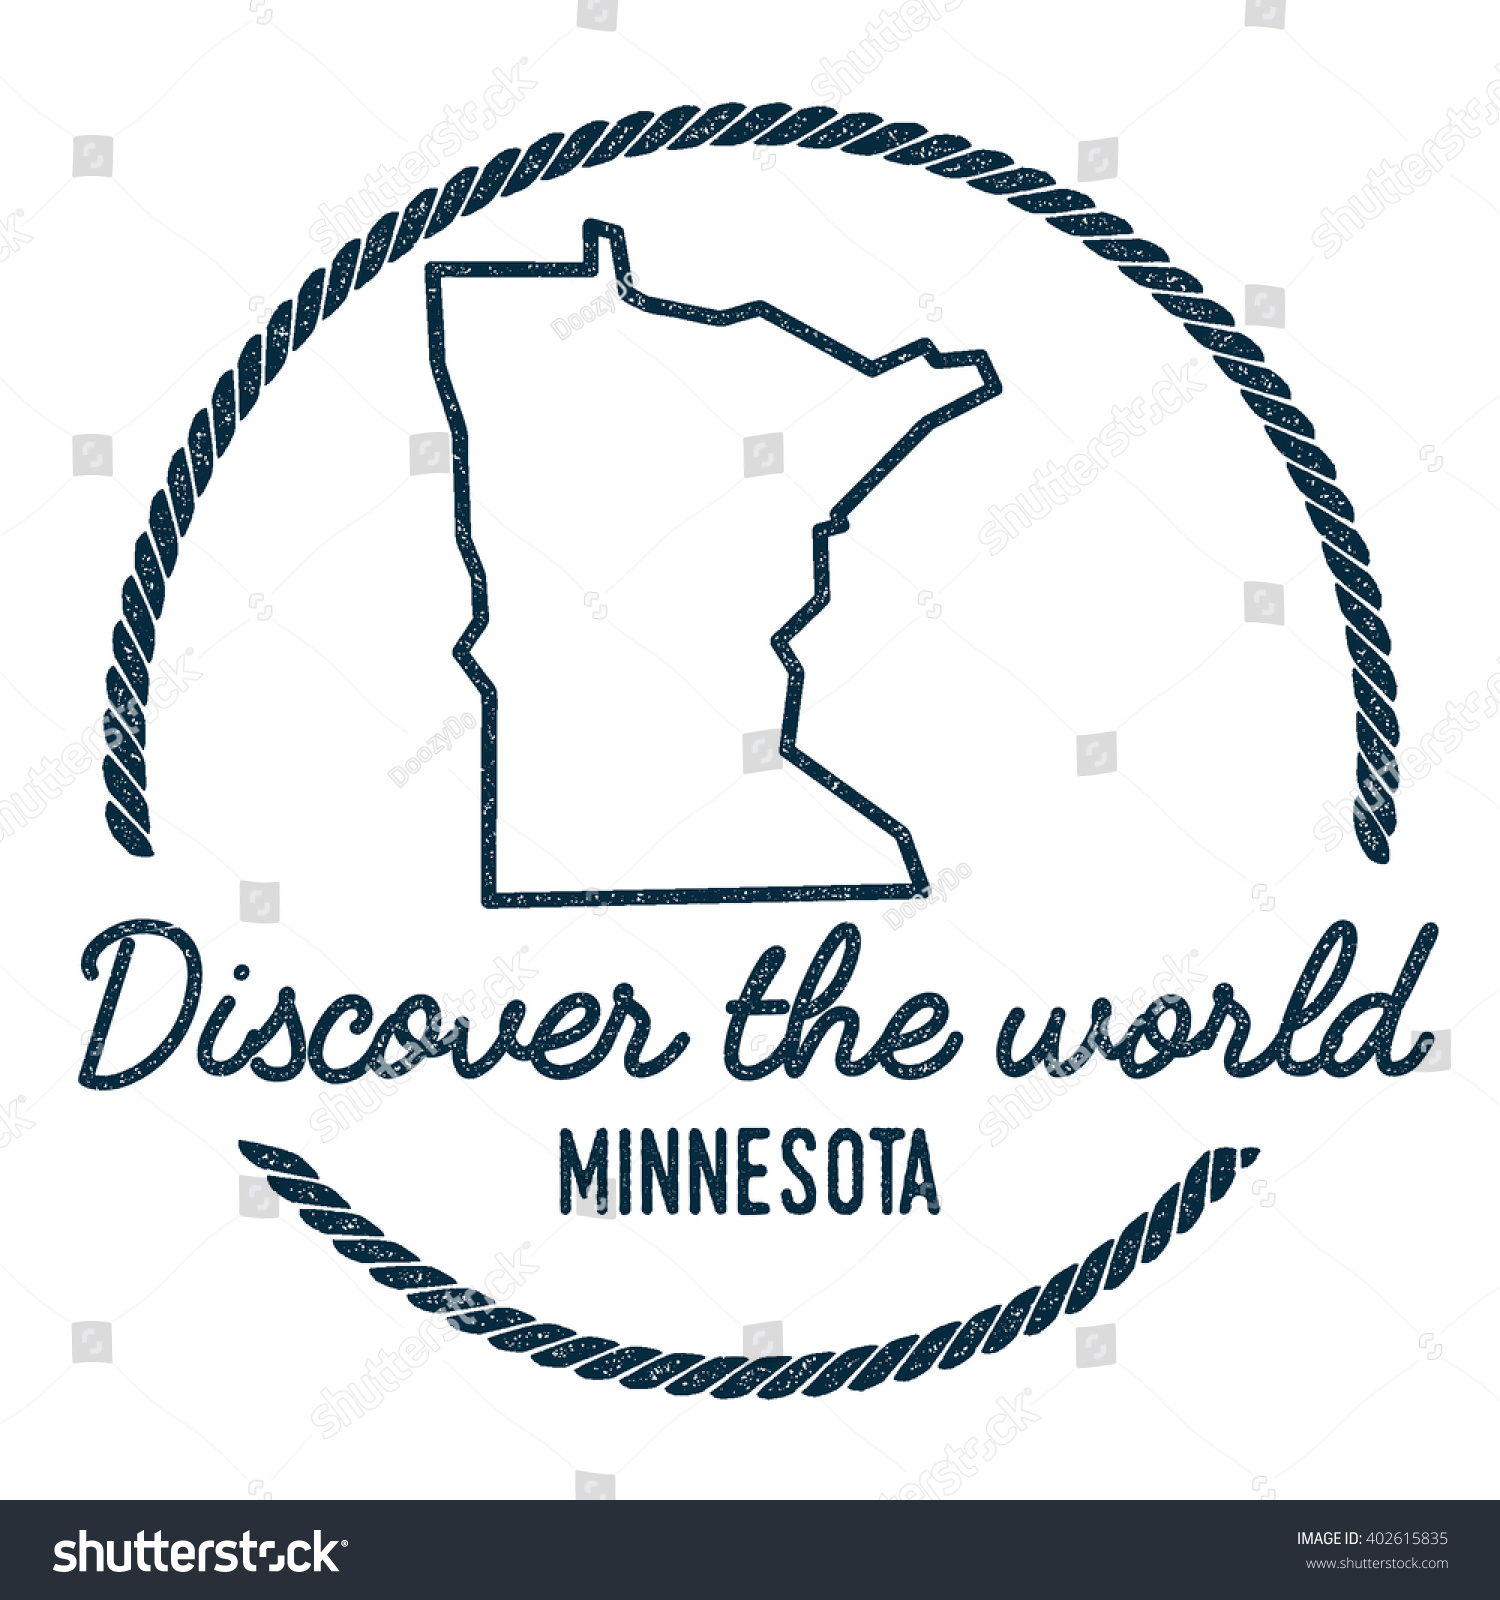 Minnesota map outline vintage discover world vectores en stock minnesota map outline vintage discover the world rubber stamp with minnesota map hipster style gumiabroncs Choice Image